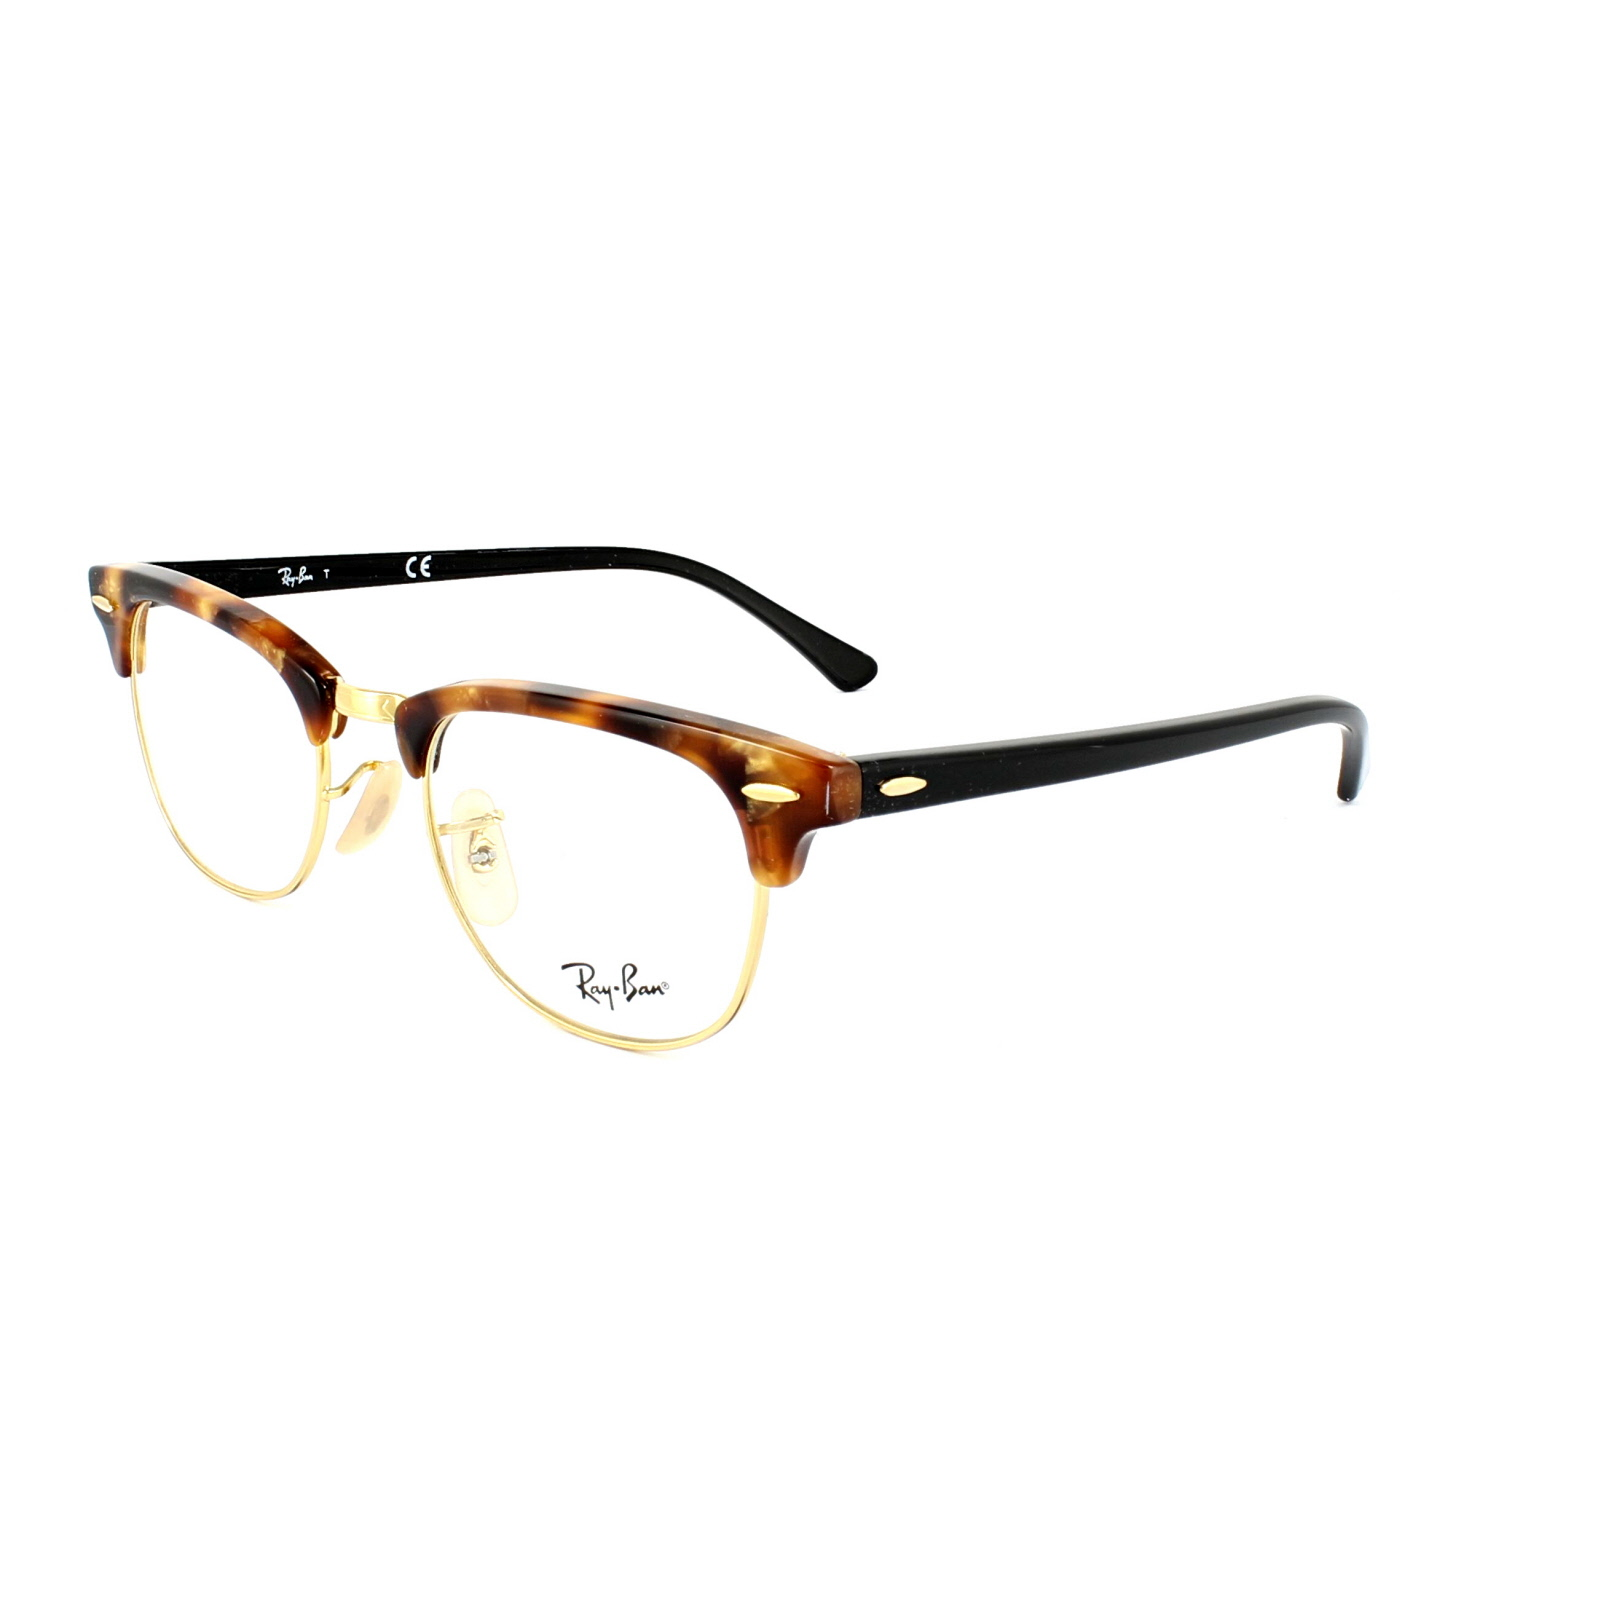 Ray Ban Clubmaster Glasses Frames : Ray-Ban Glasses Frames 5154 Clubmaster 5494 Fleck Brown Havana